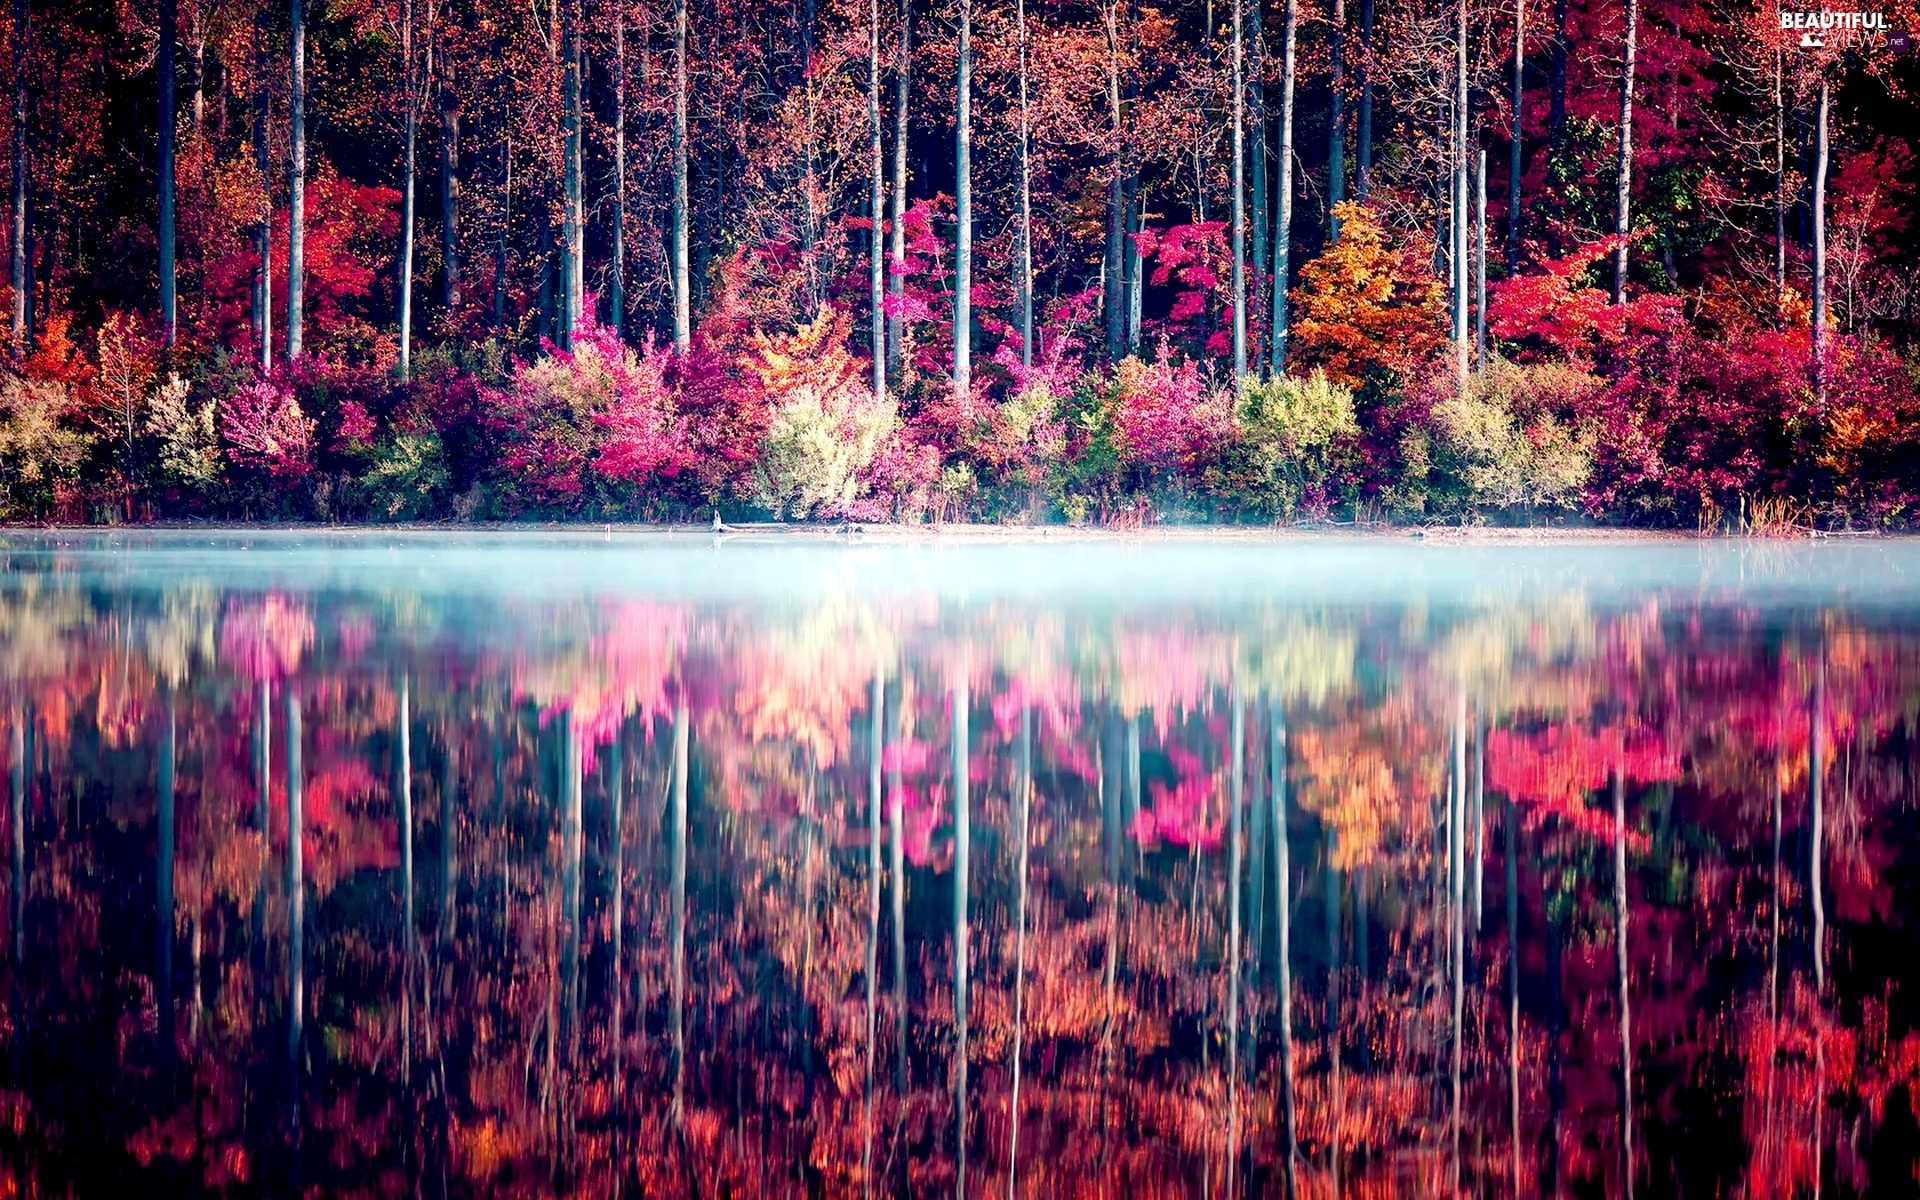 lake, reflection, trees, viewes, color